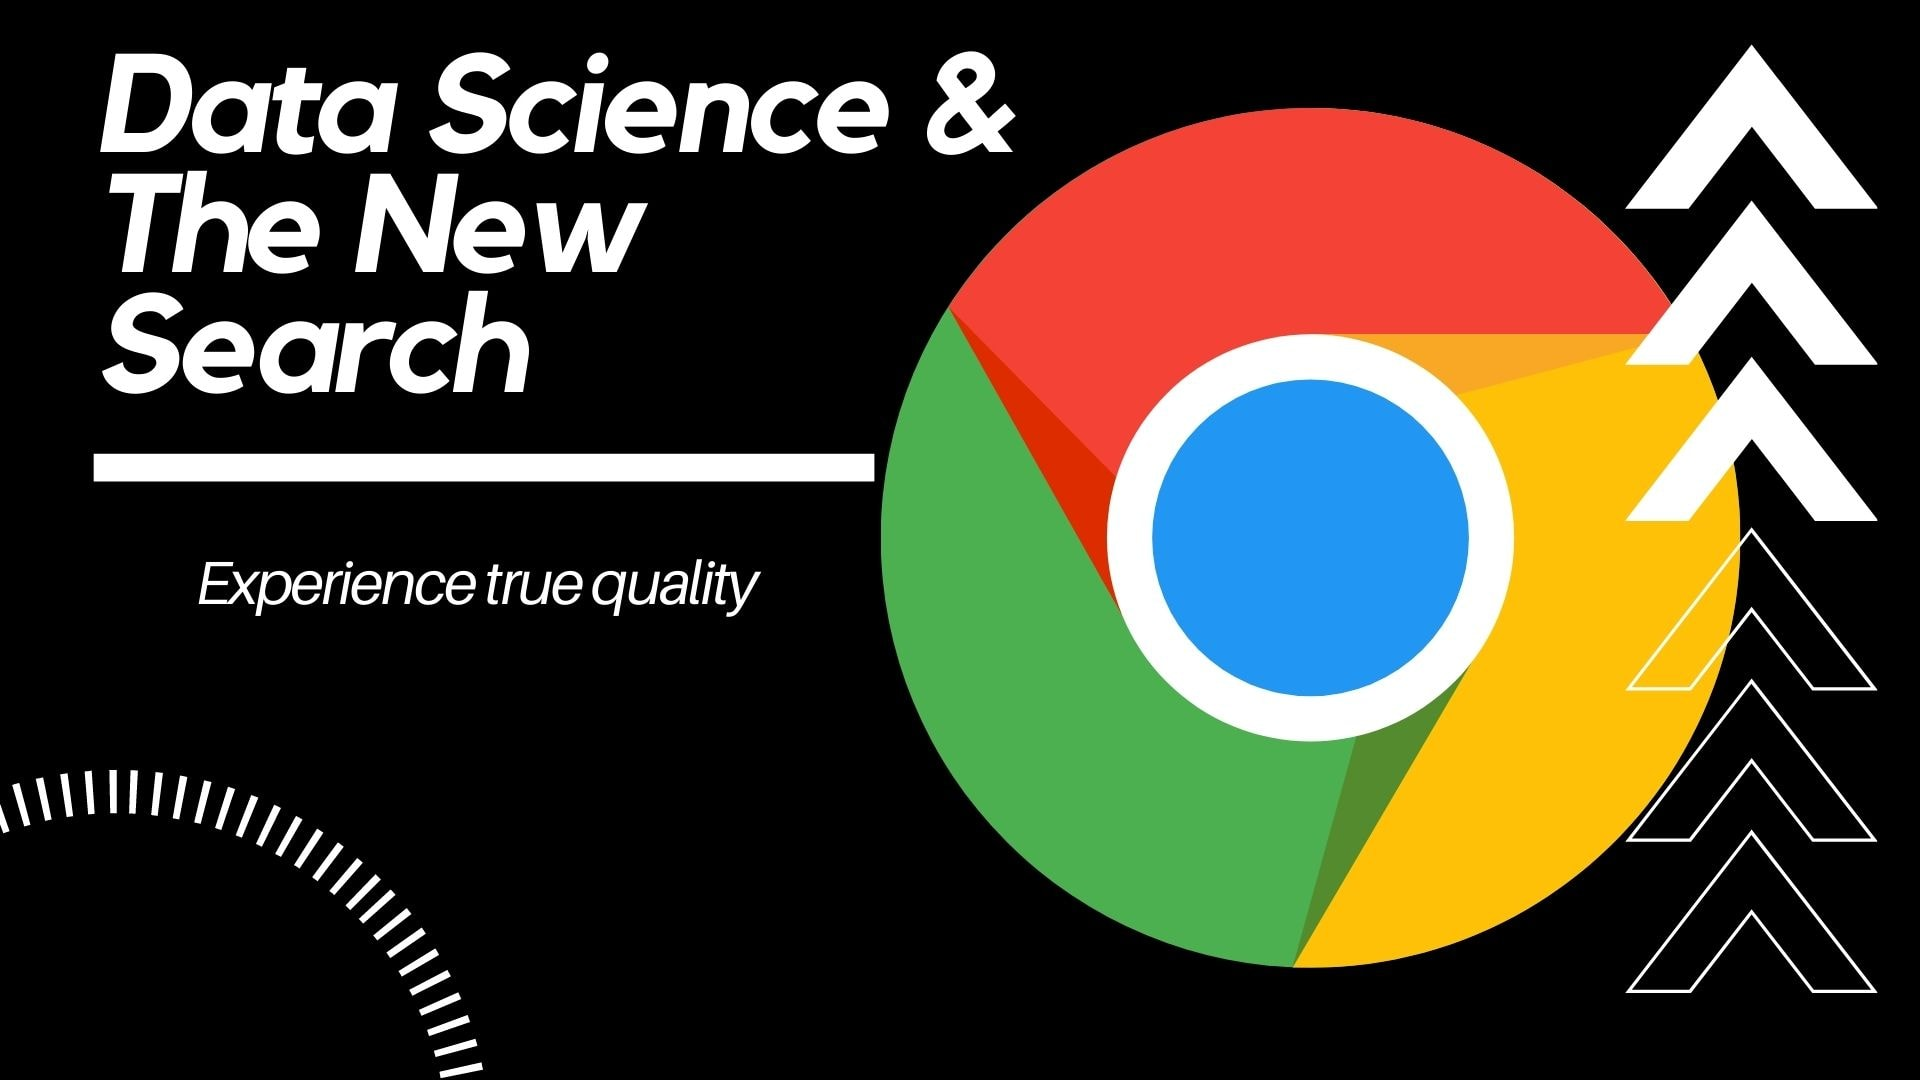 The New Search Data Science